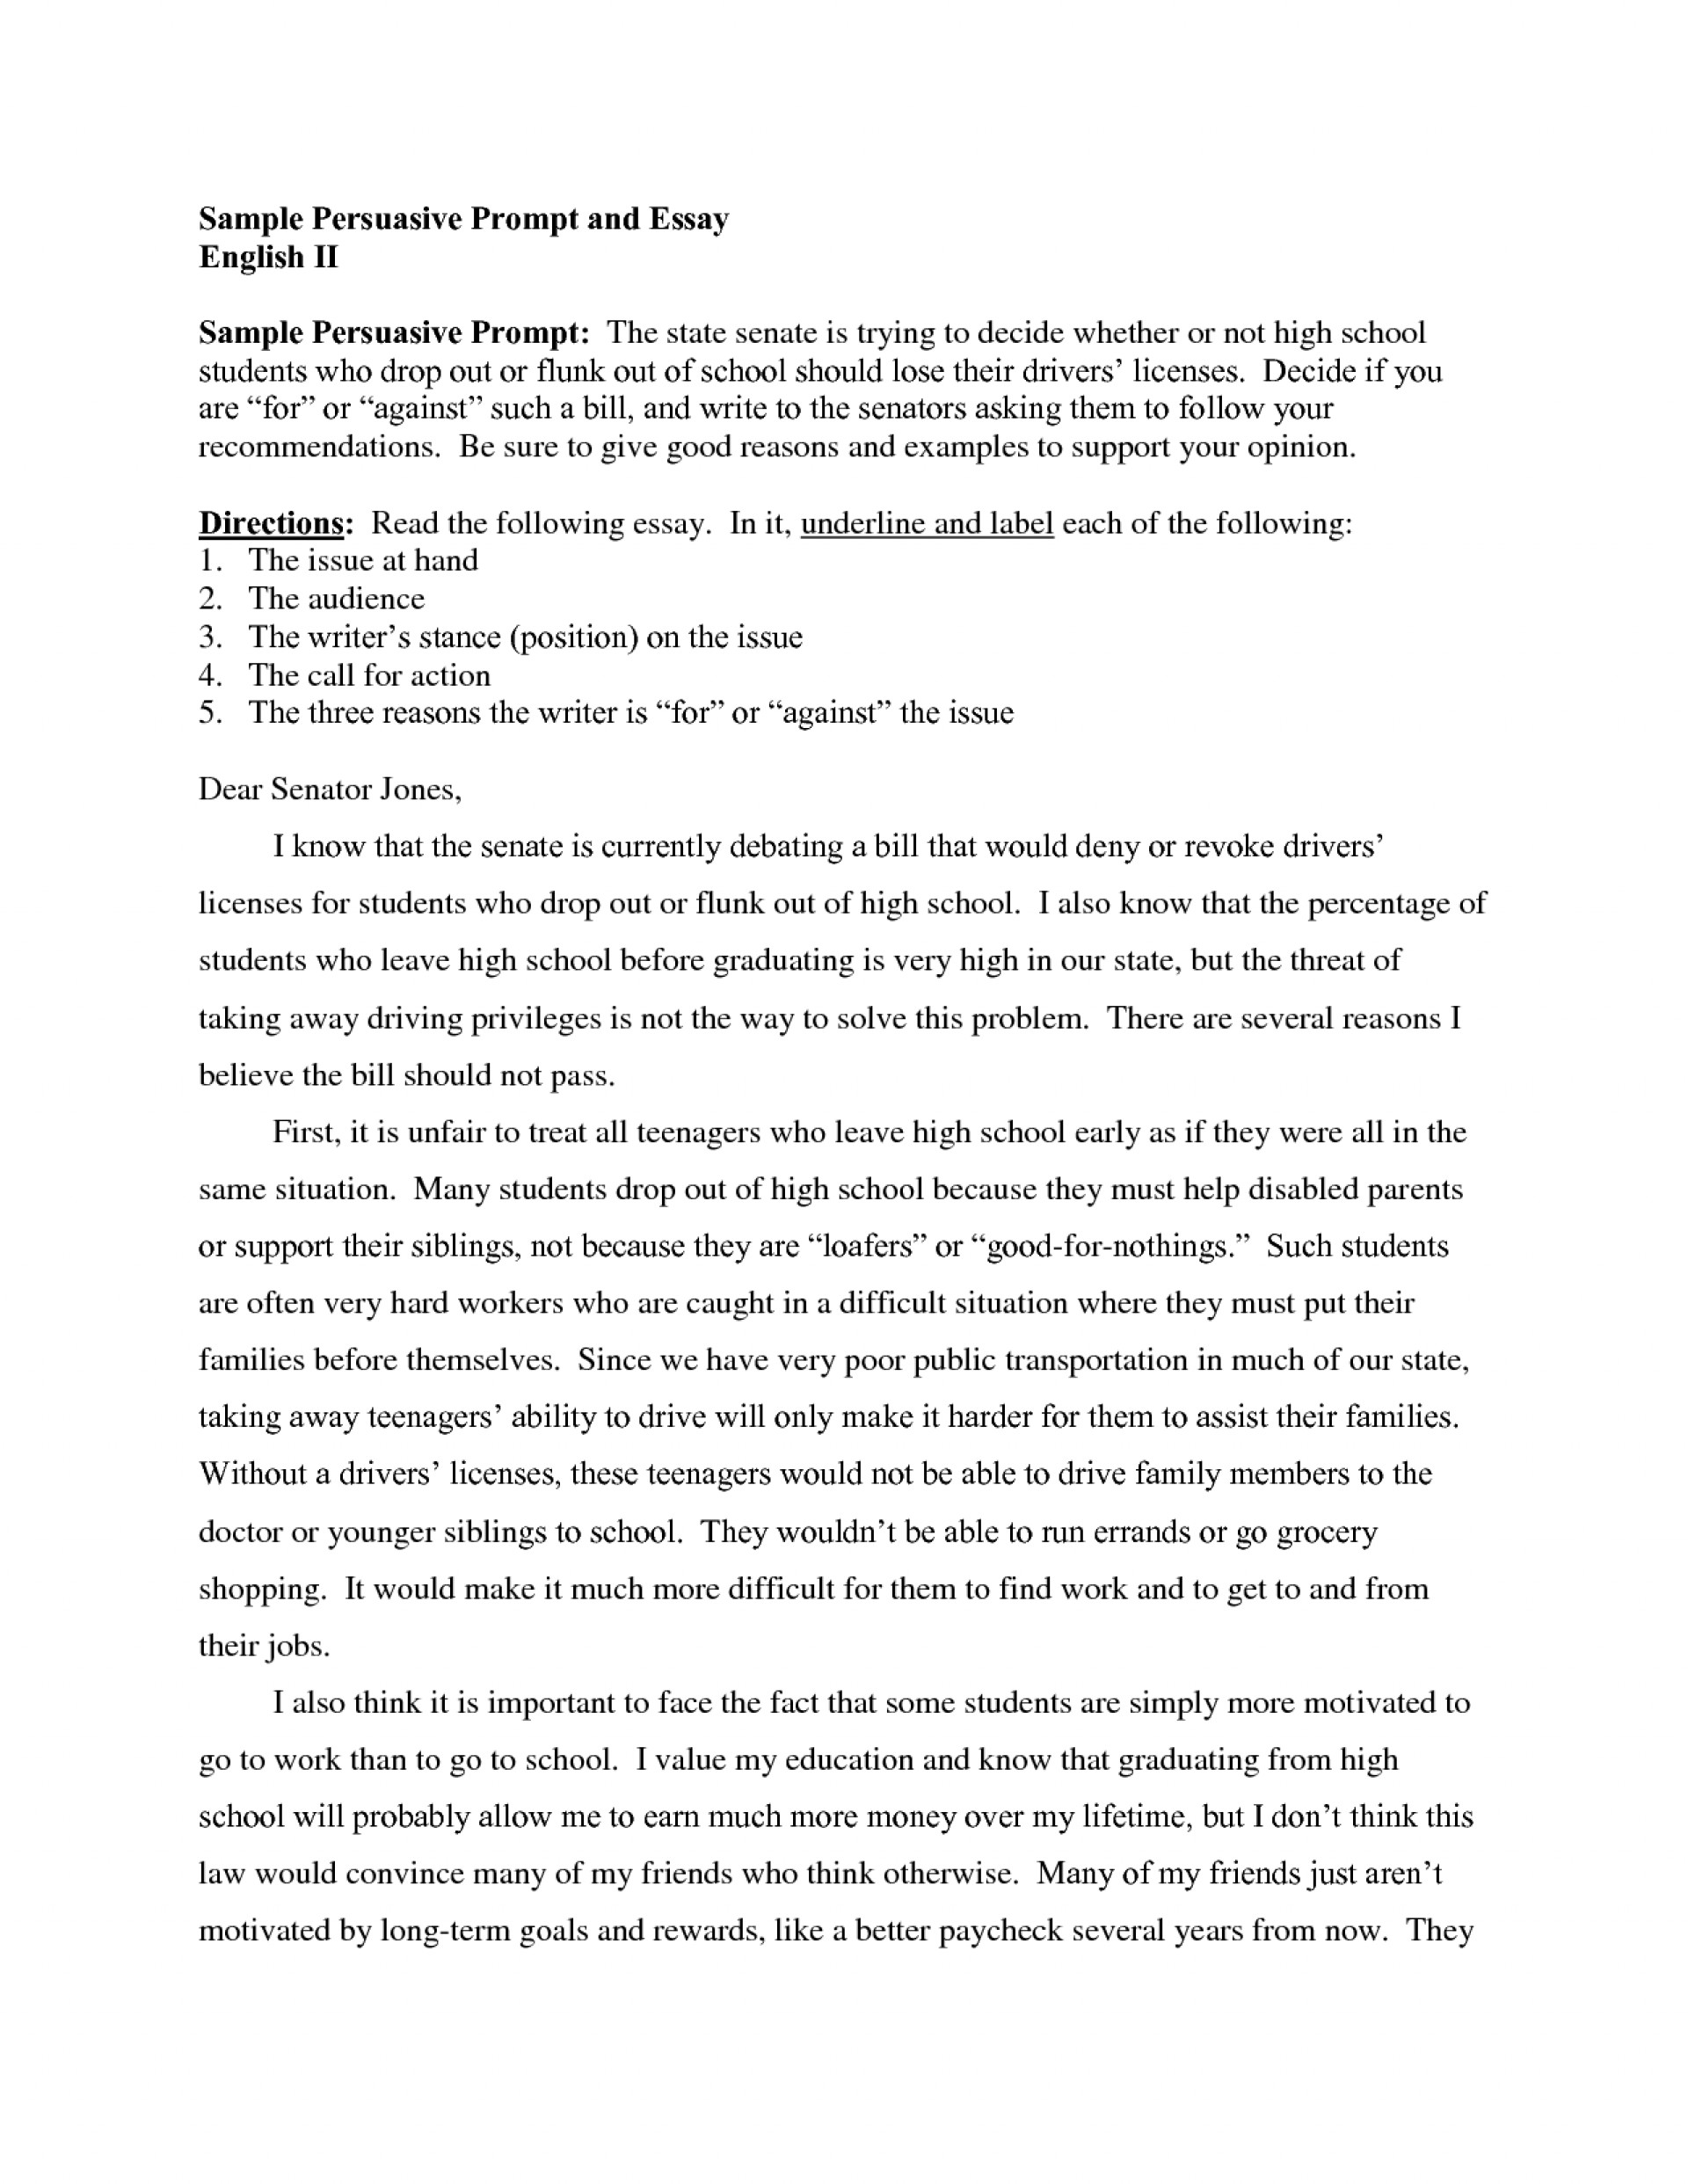 013 Research Paper Easy Topic Persuasive Essay Topics For High School Sample Ideas Highschool Students Good Prompt Funny Fun List Of Seniors Writing English Sensational Psychology Biology 1920